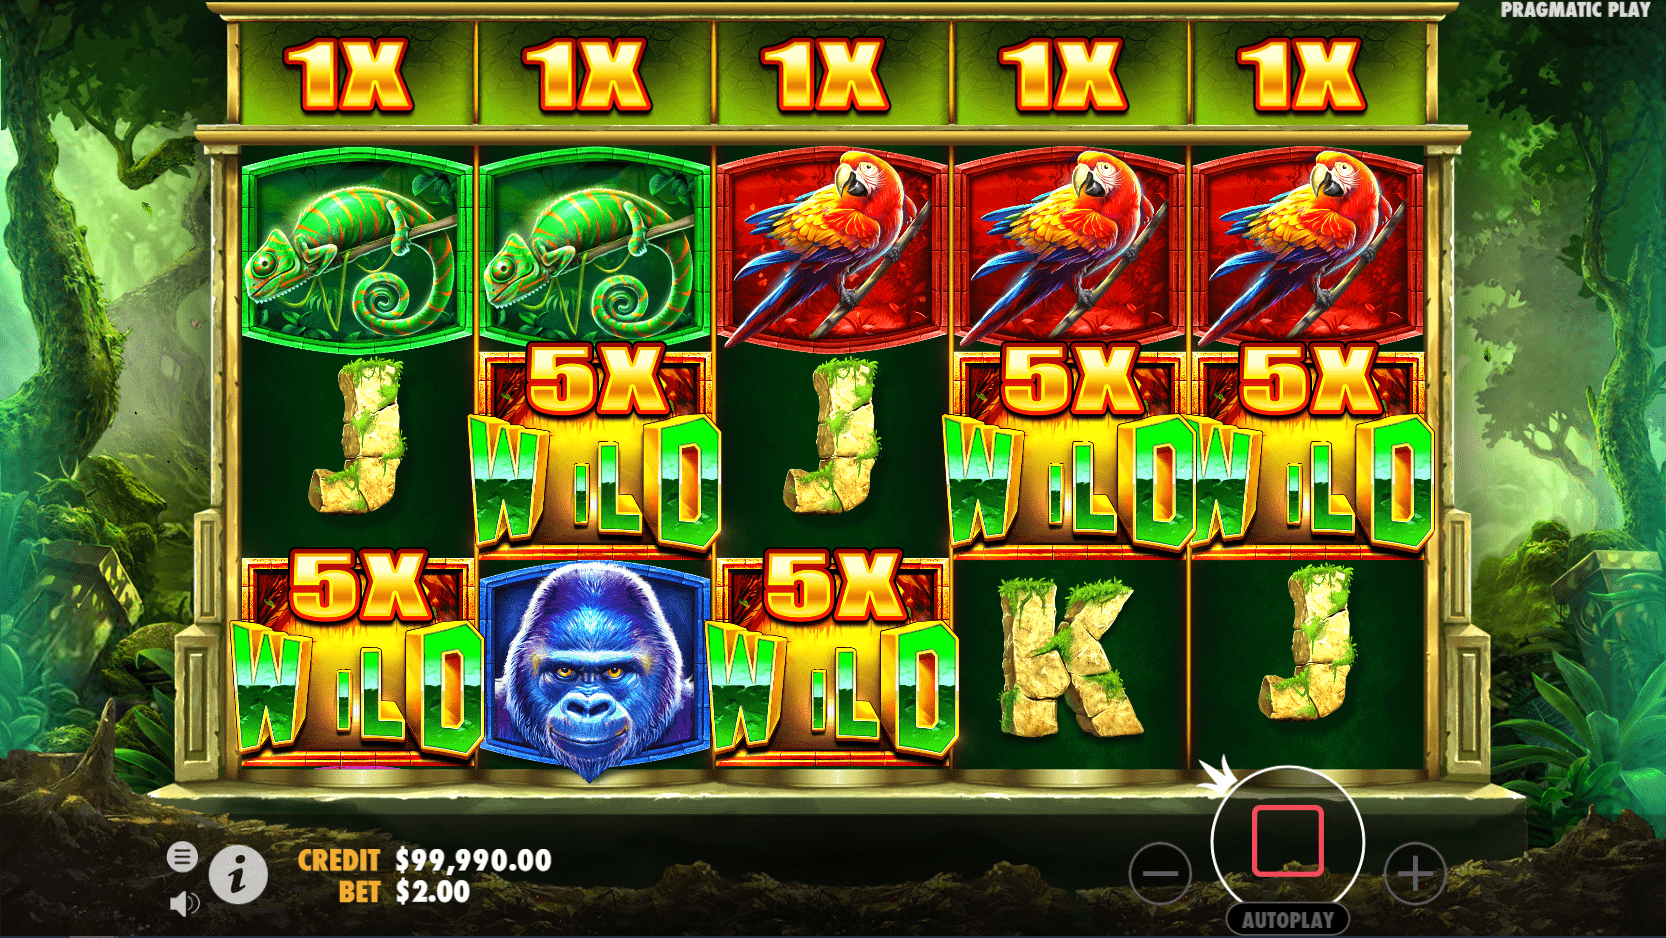 Jungle Gorilla Video Slot Max win